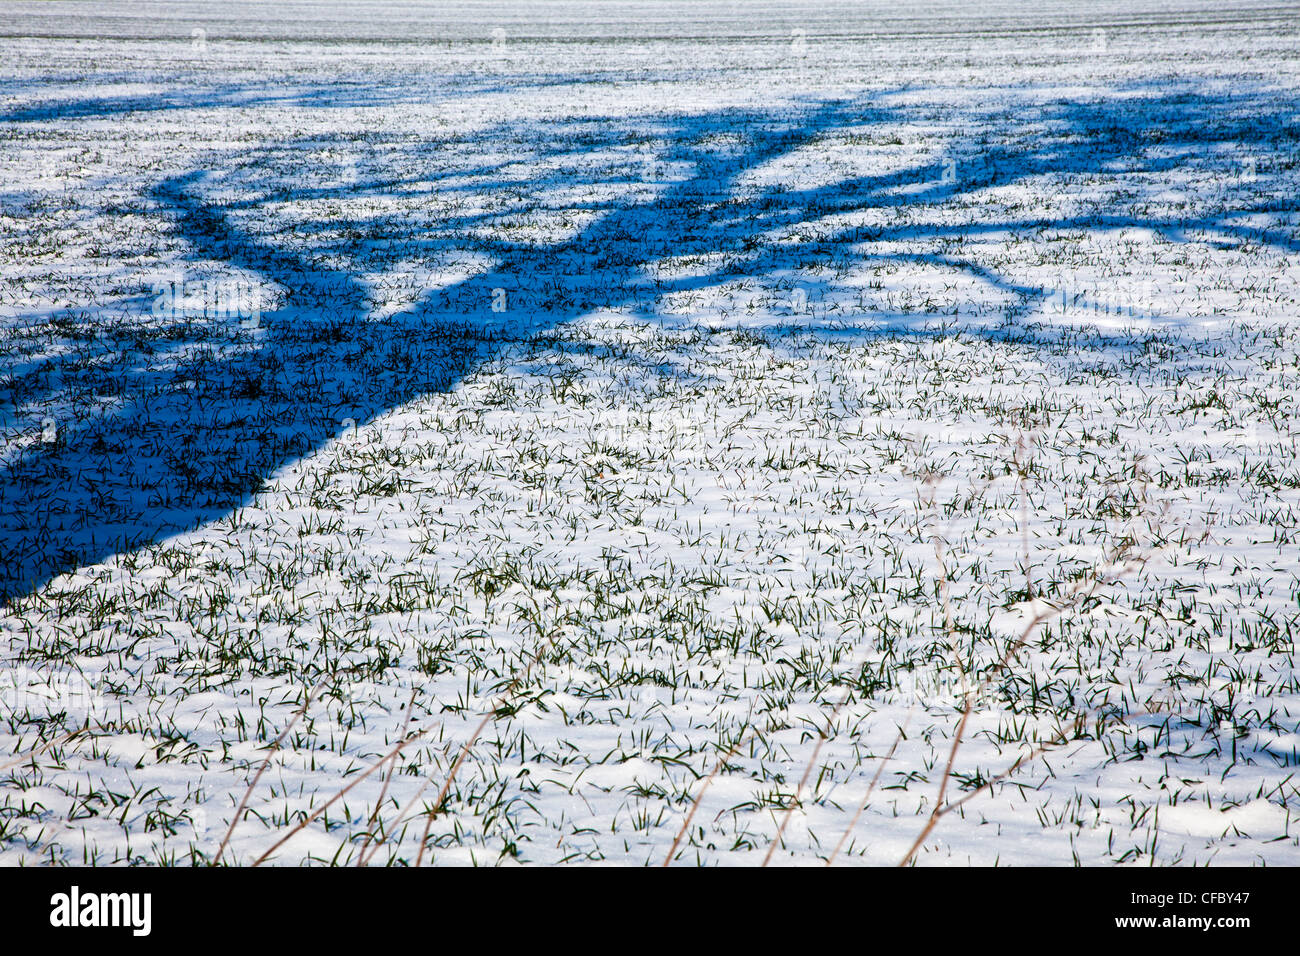 An abstract minimalist image of the shadow cast by a tree onto a snow covered field - Stock Image